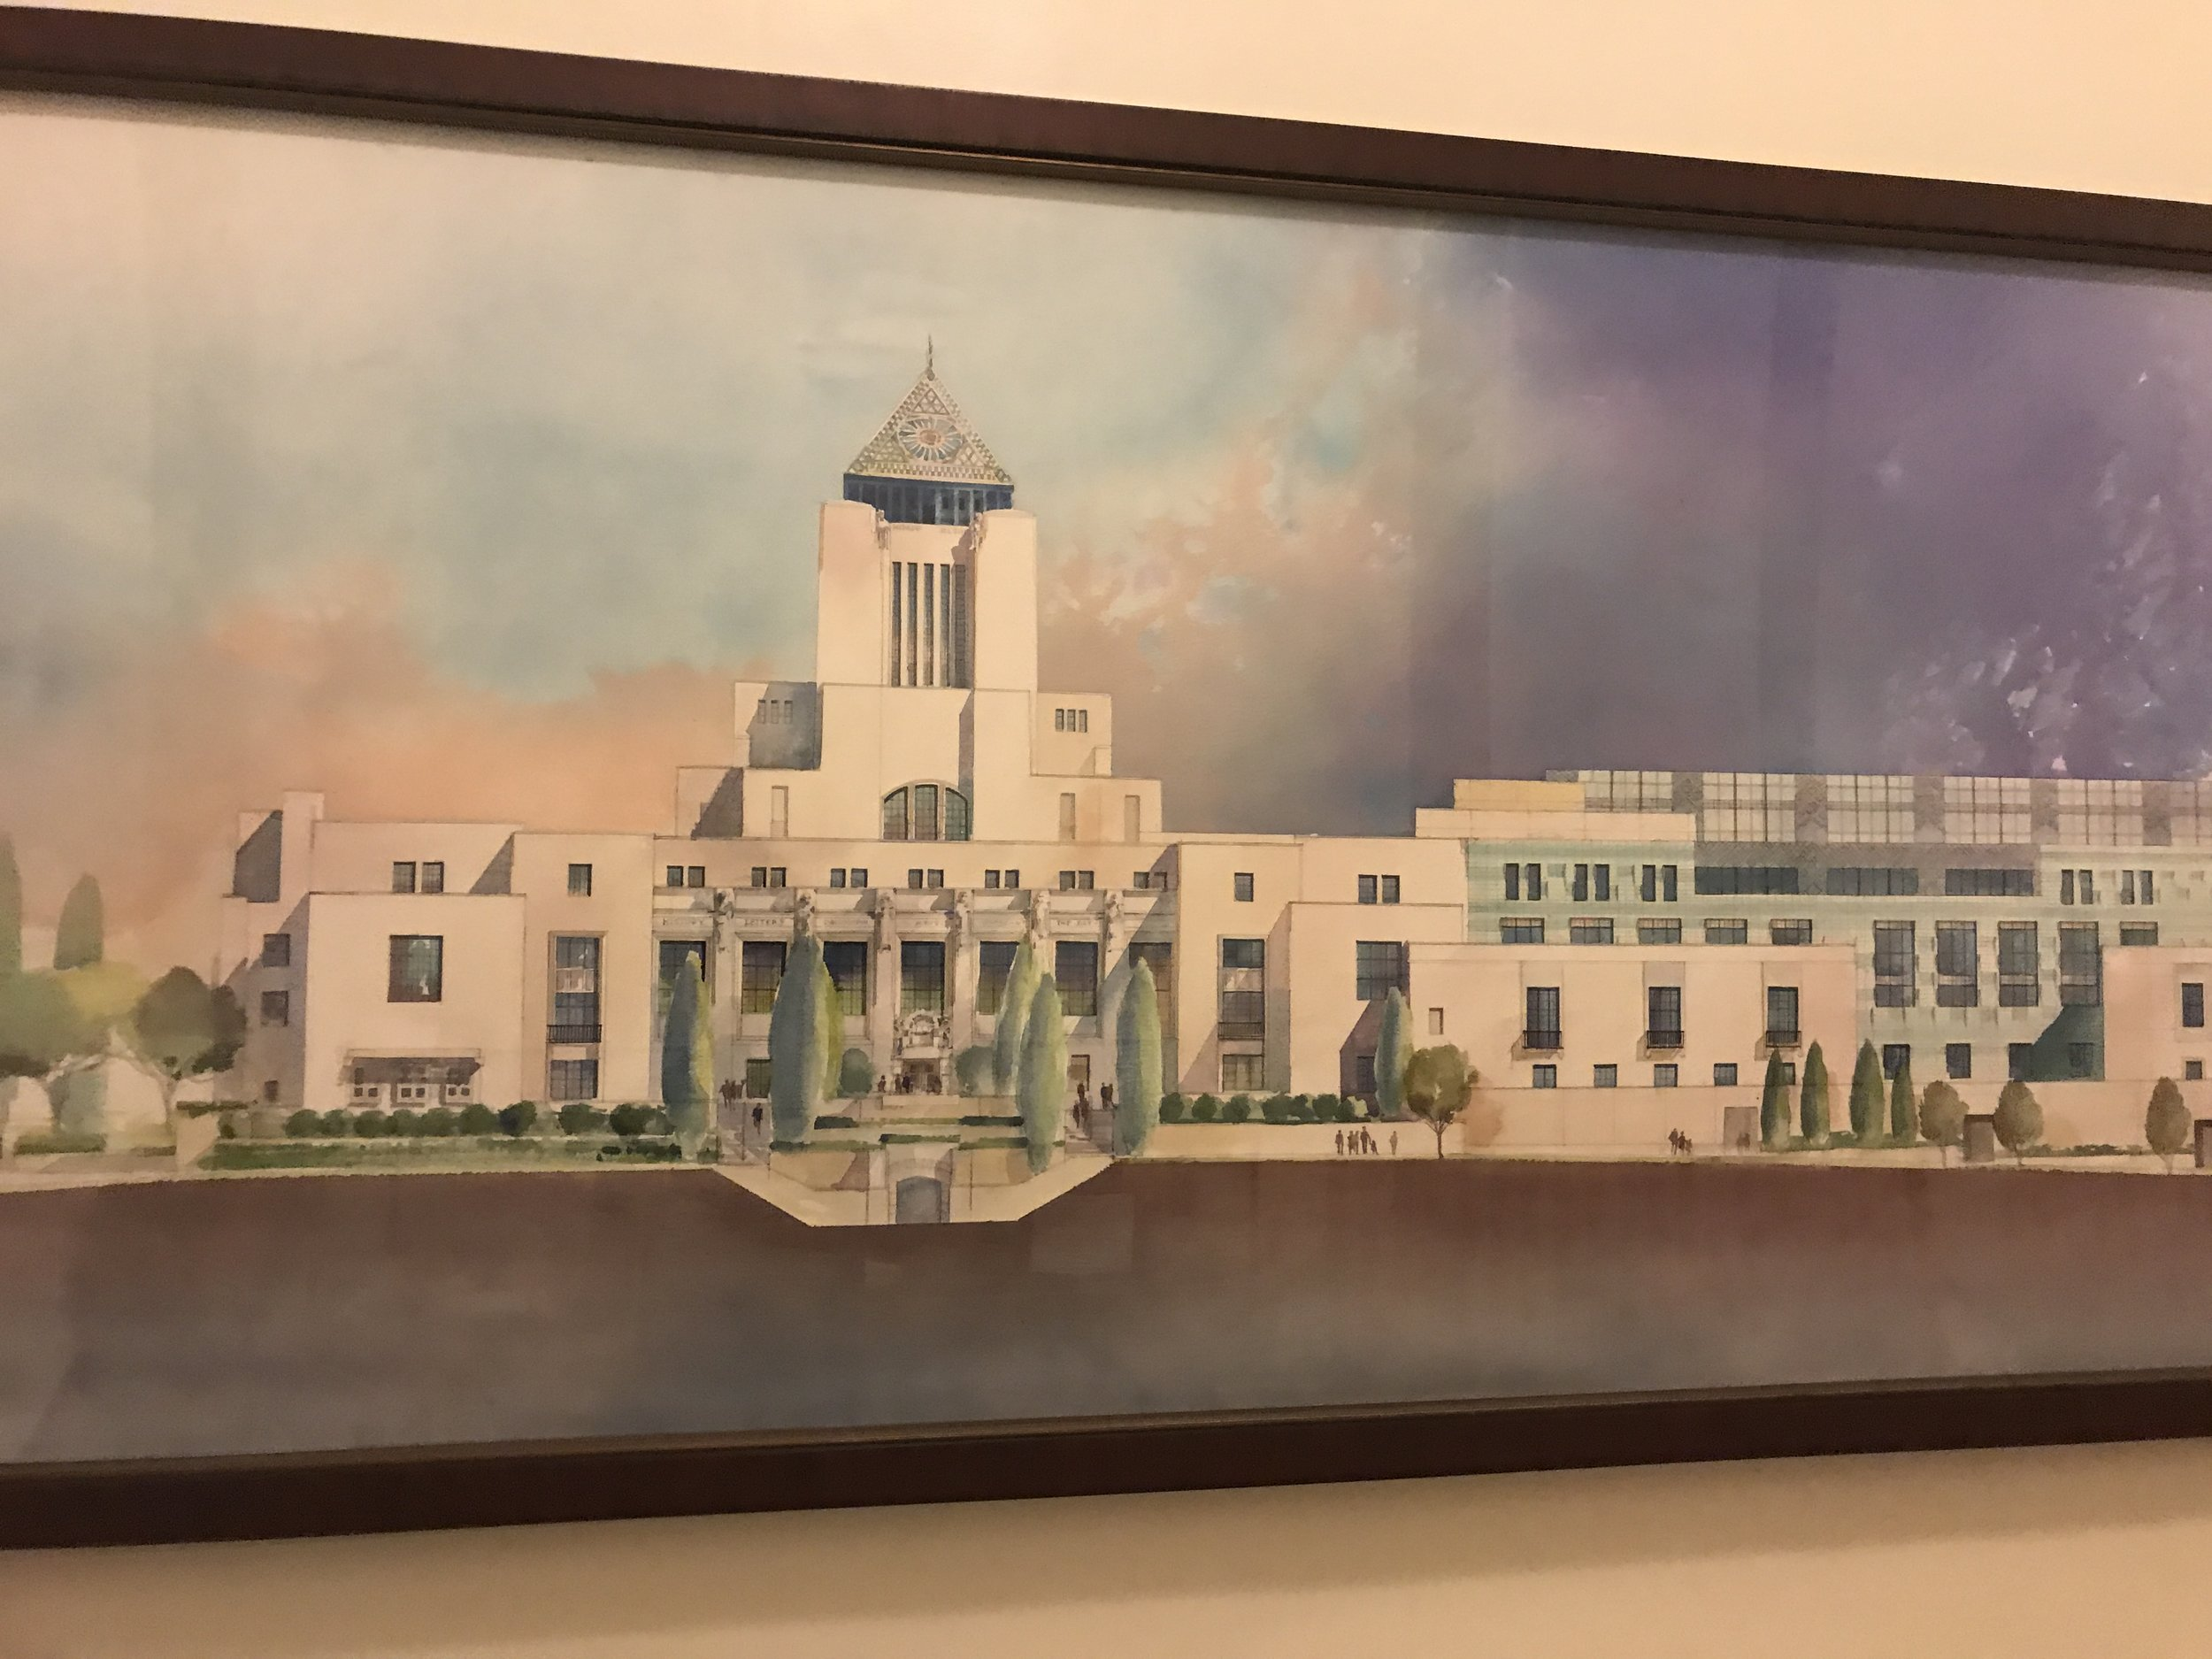 Painting of the Los Angeles Central Library that hangs in the Central Library